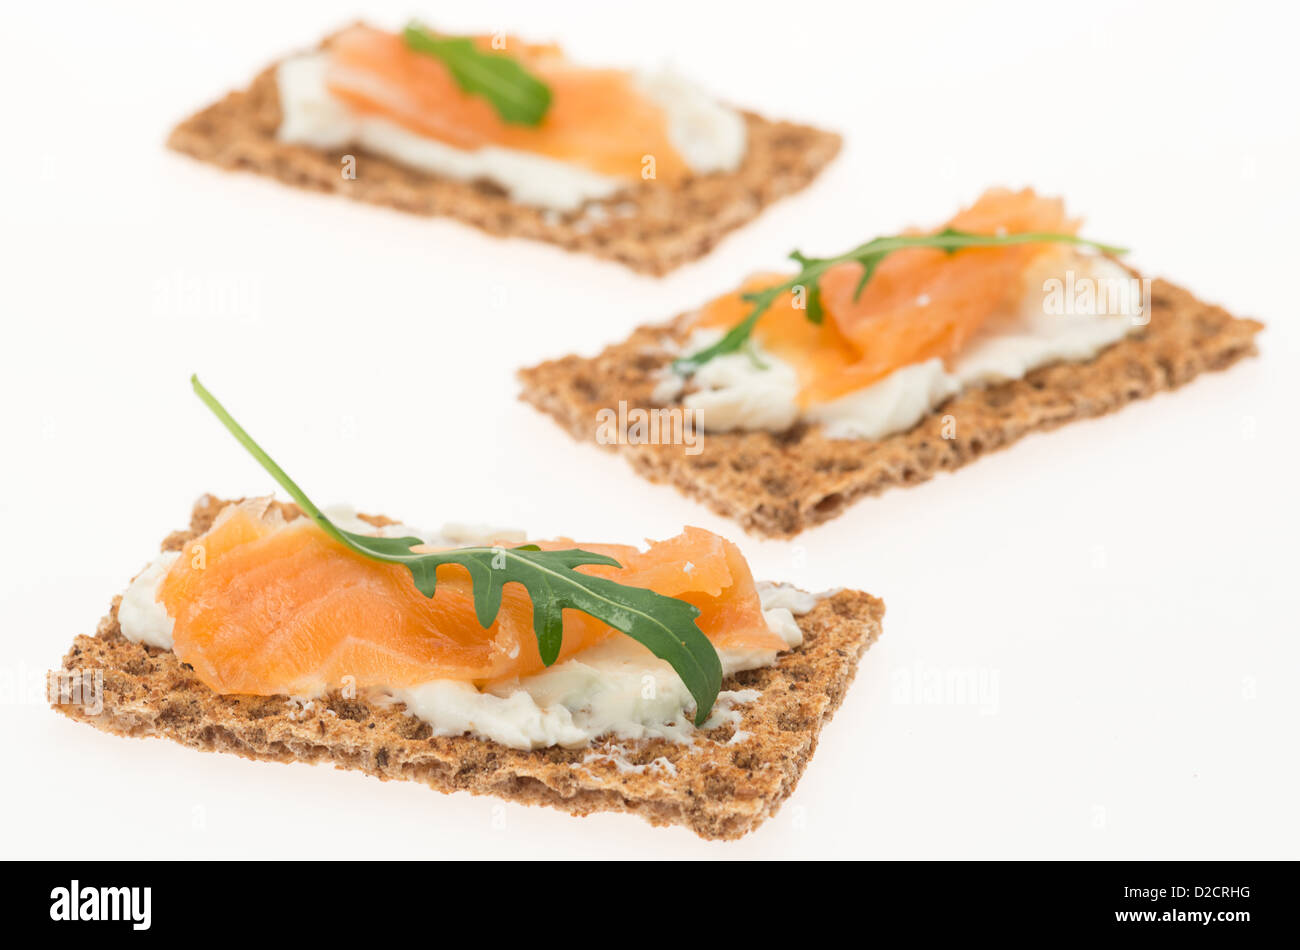 Crispbread with cream cheese and smoked salmon - studio shot with a white background and shallow depth of field - Stock Image